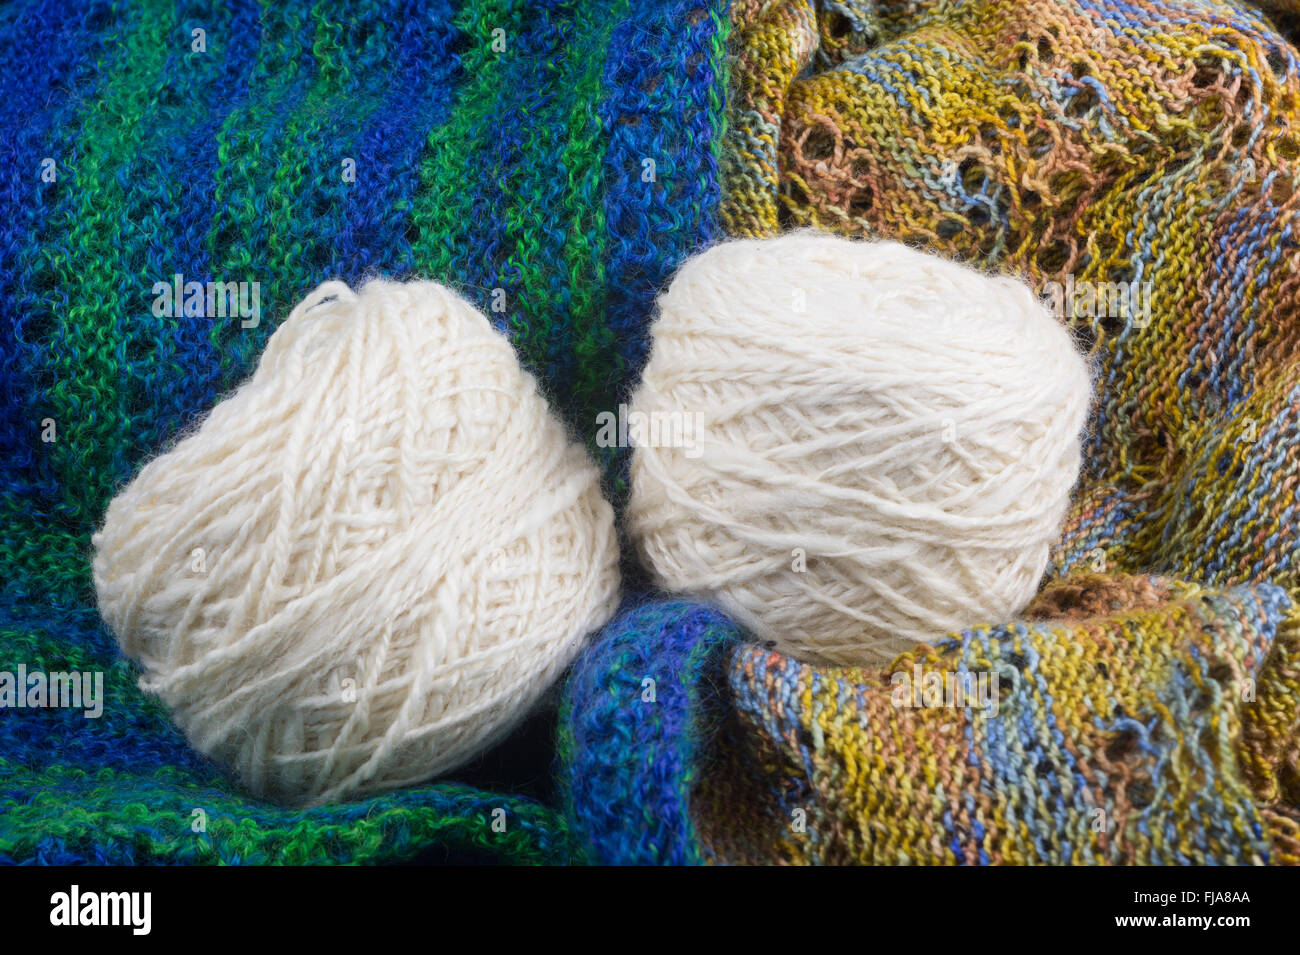 knitted items and balls of wool - Stock Image